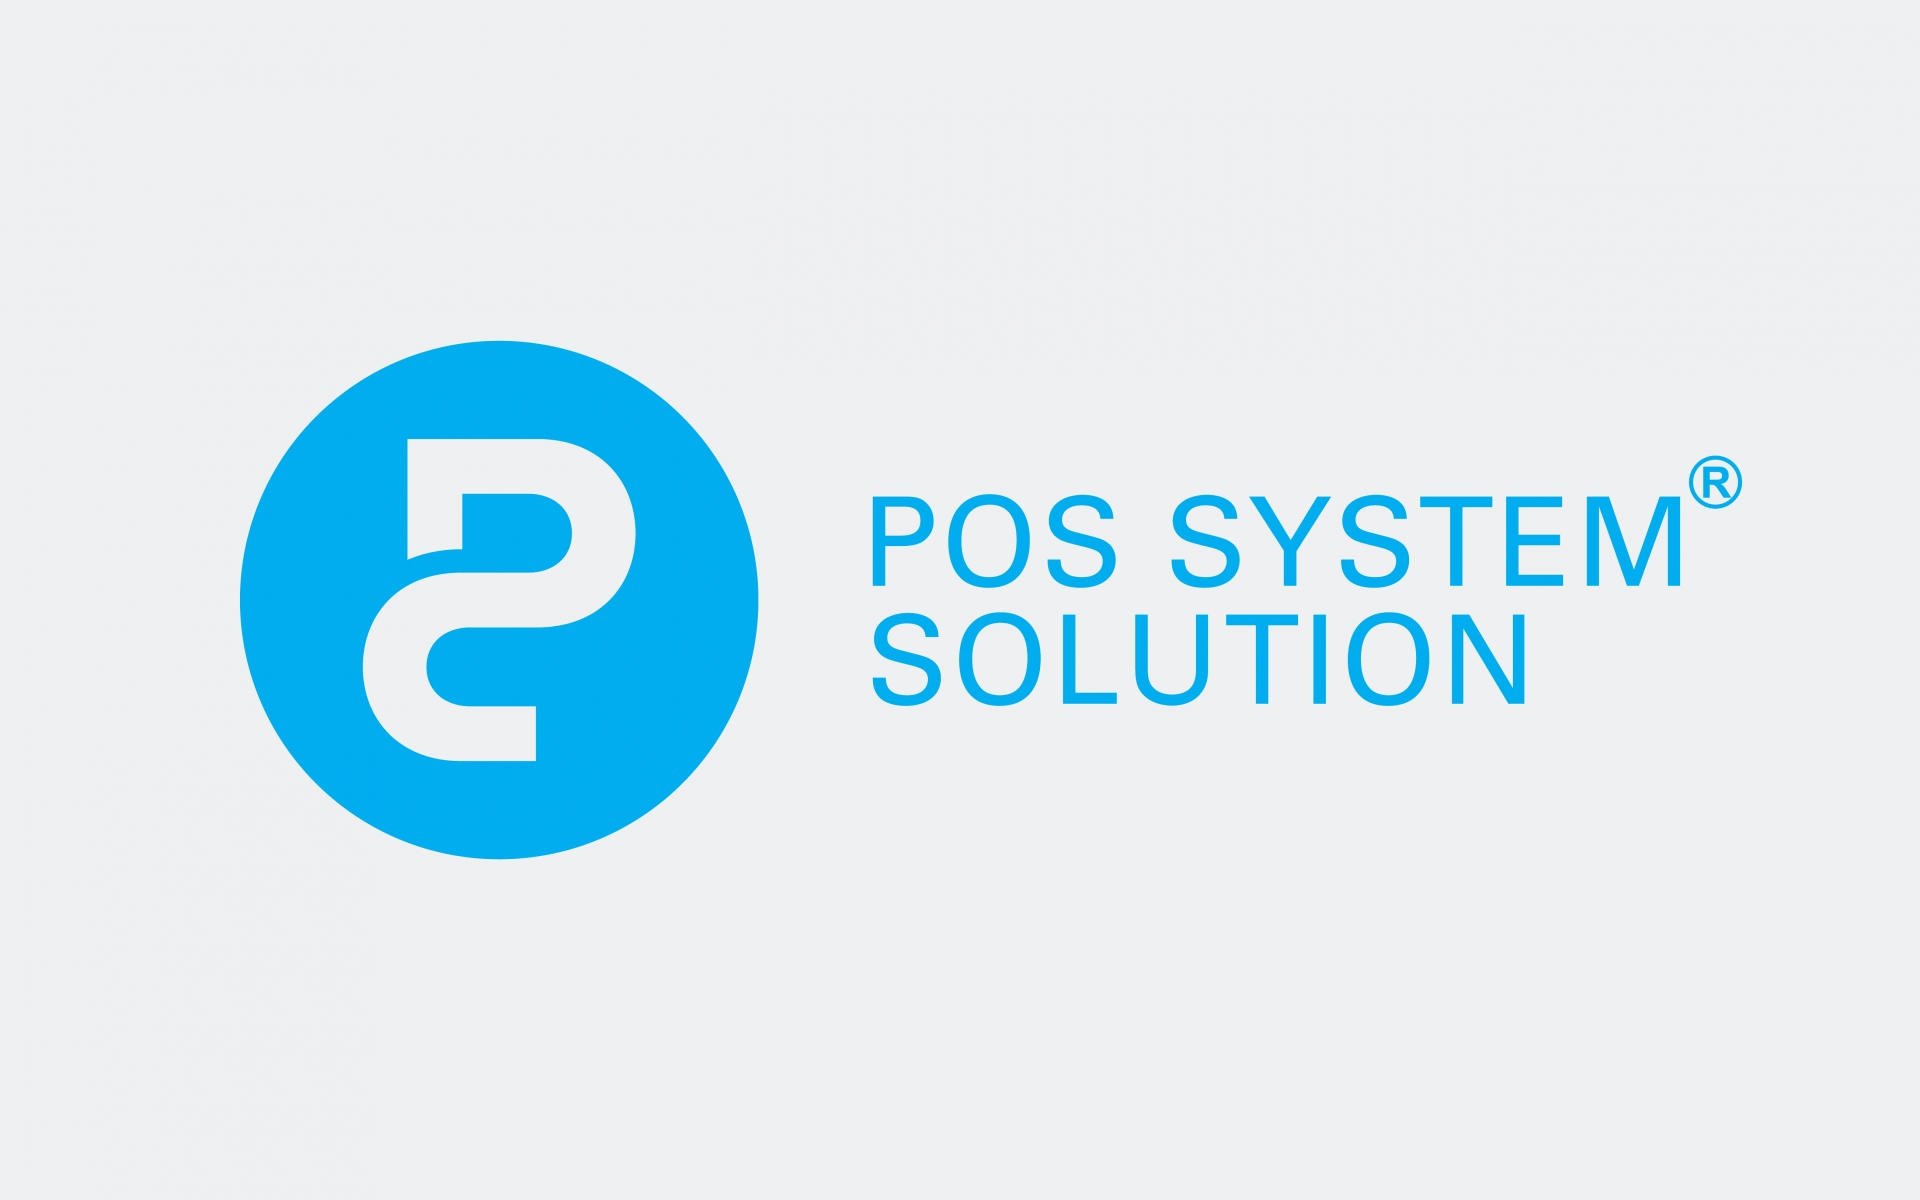 "<a href=""#"" target=""_blank"">Pos System Solution</a>"